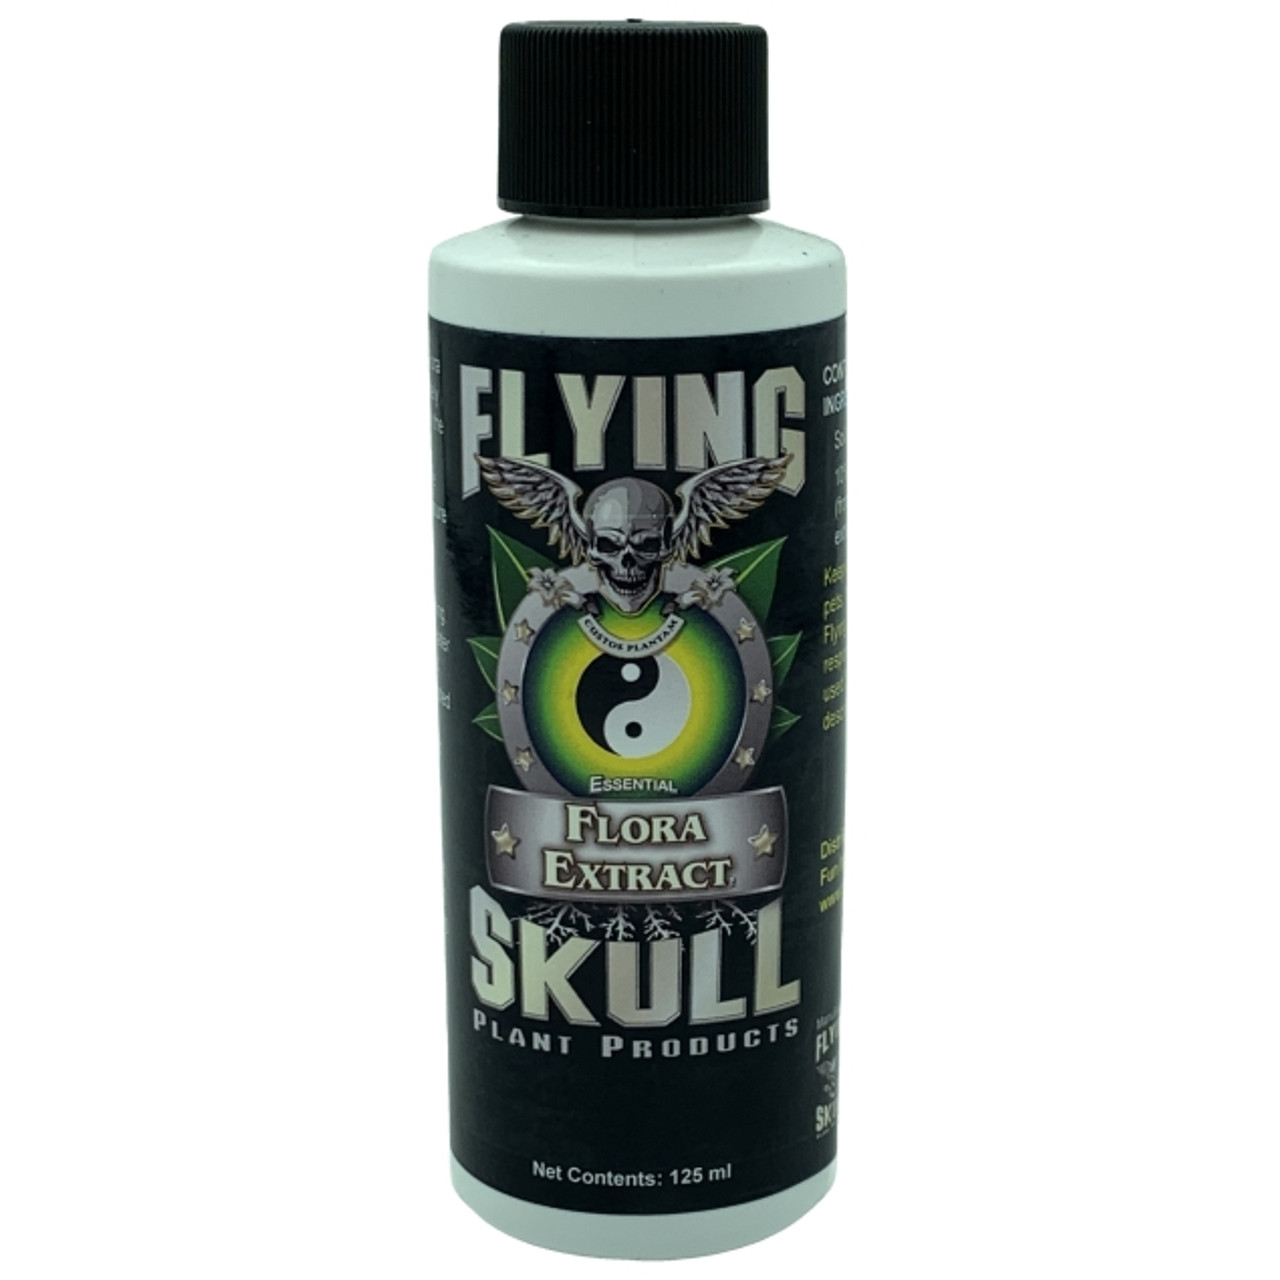 Flying Skull Essential Flora Extract 125ml Bottle Image